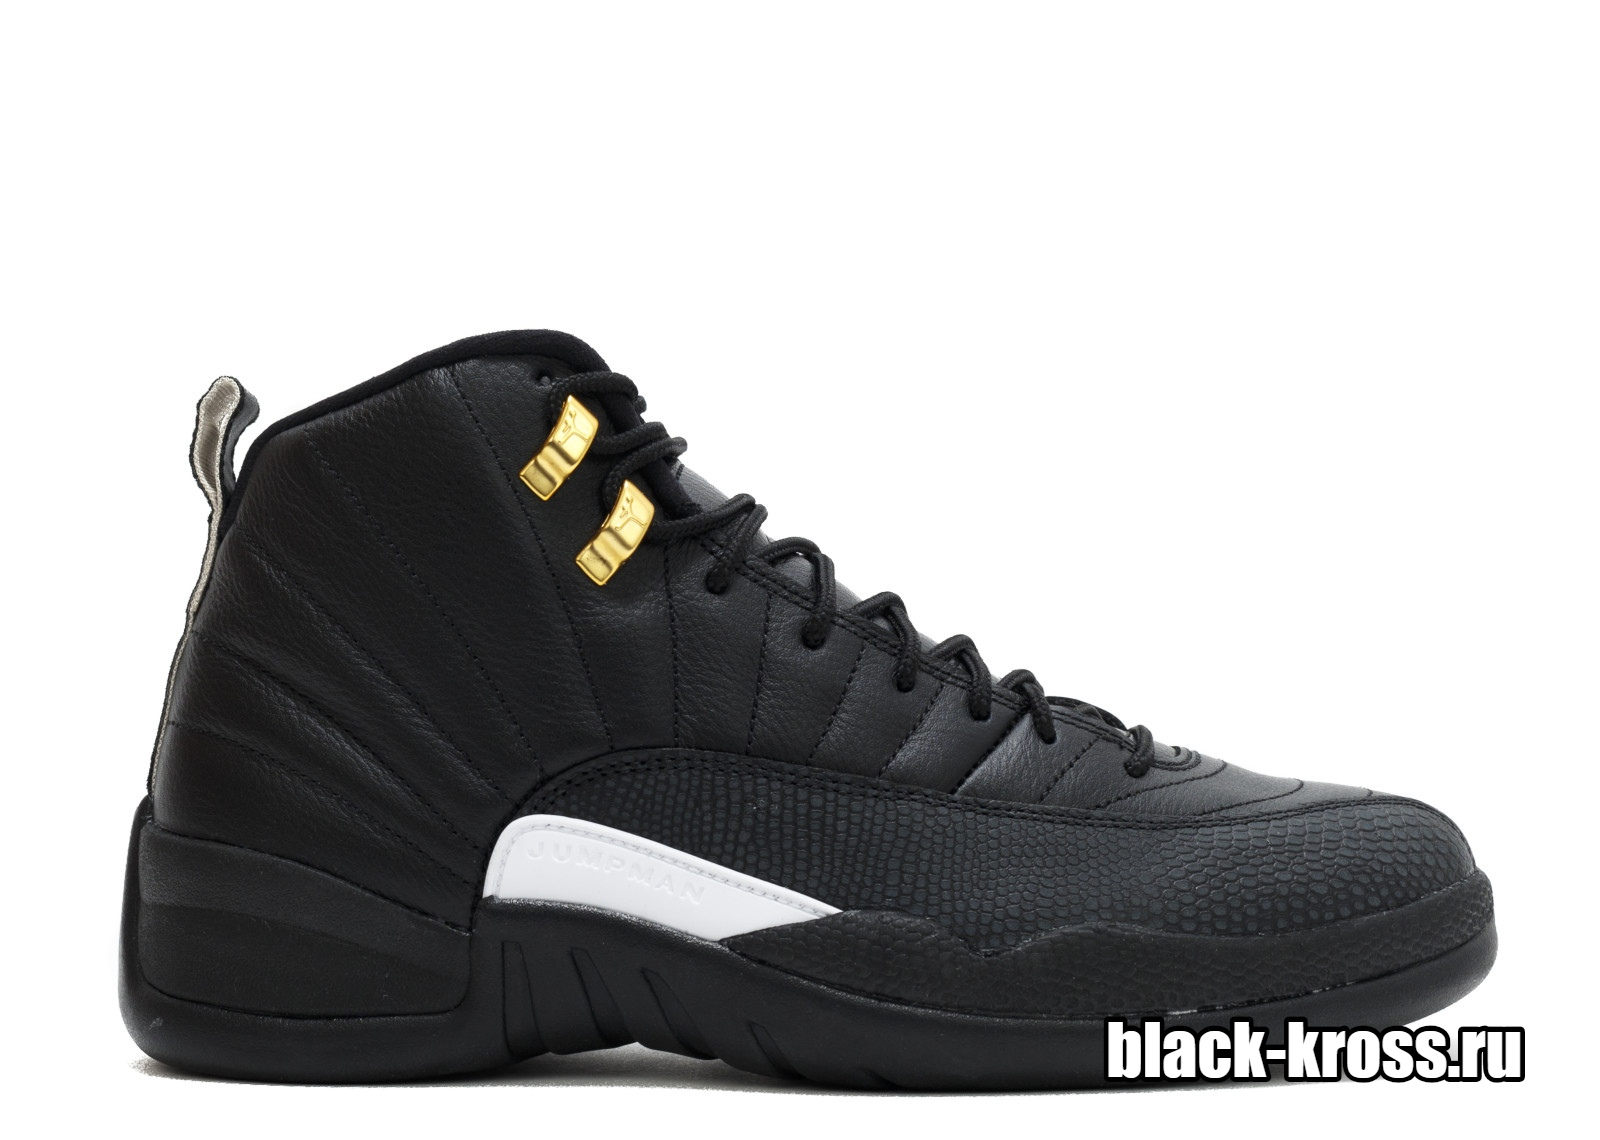 NIKE AIR JORDAN 12 RETRO Black & White (41-46)